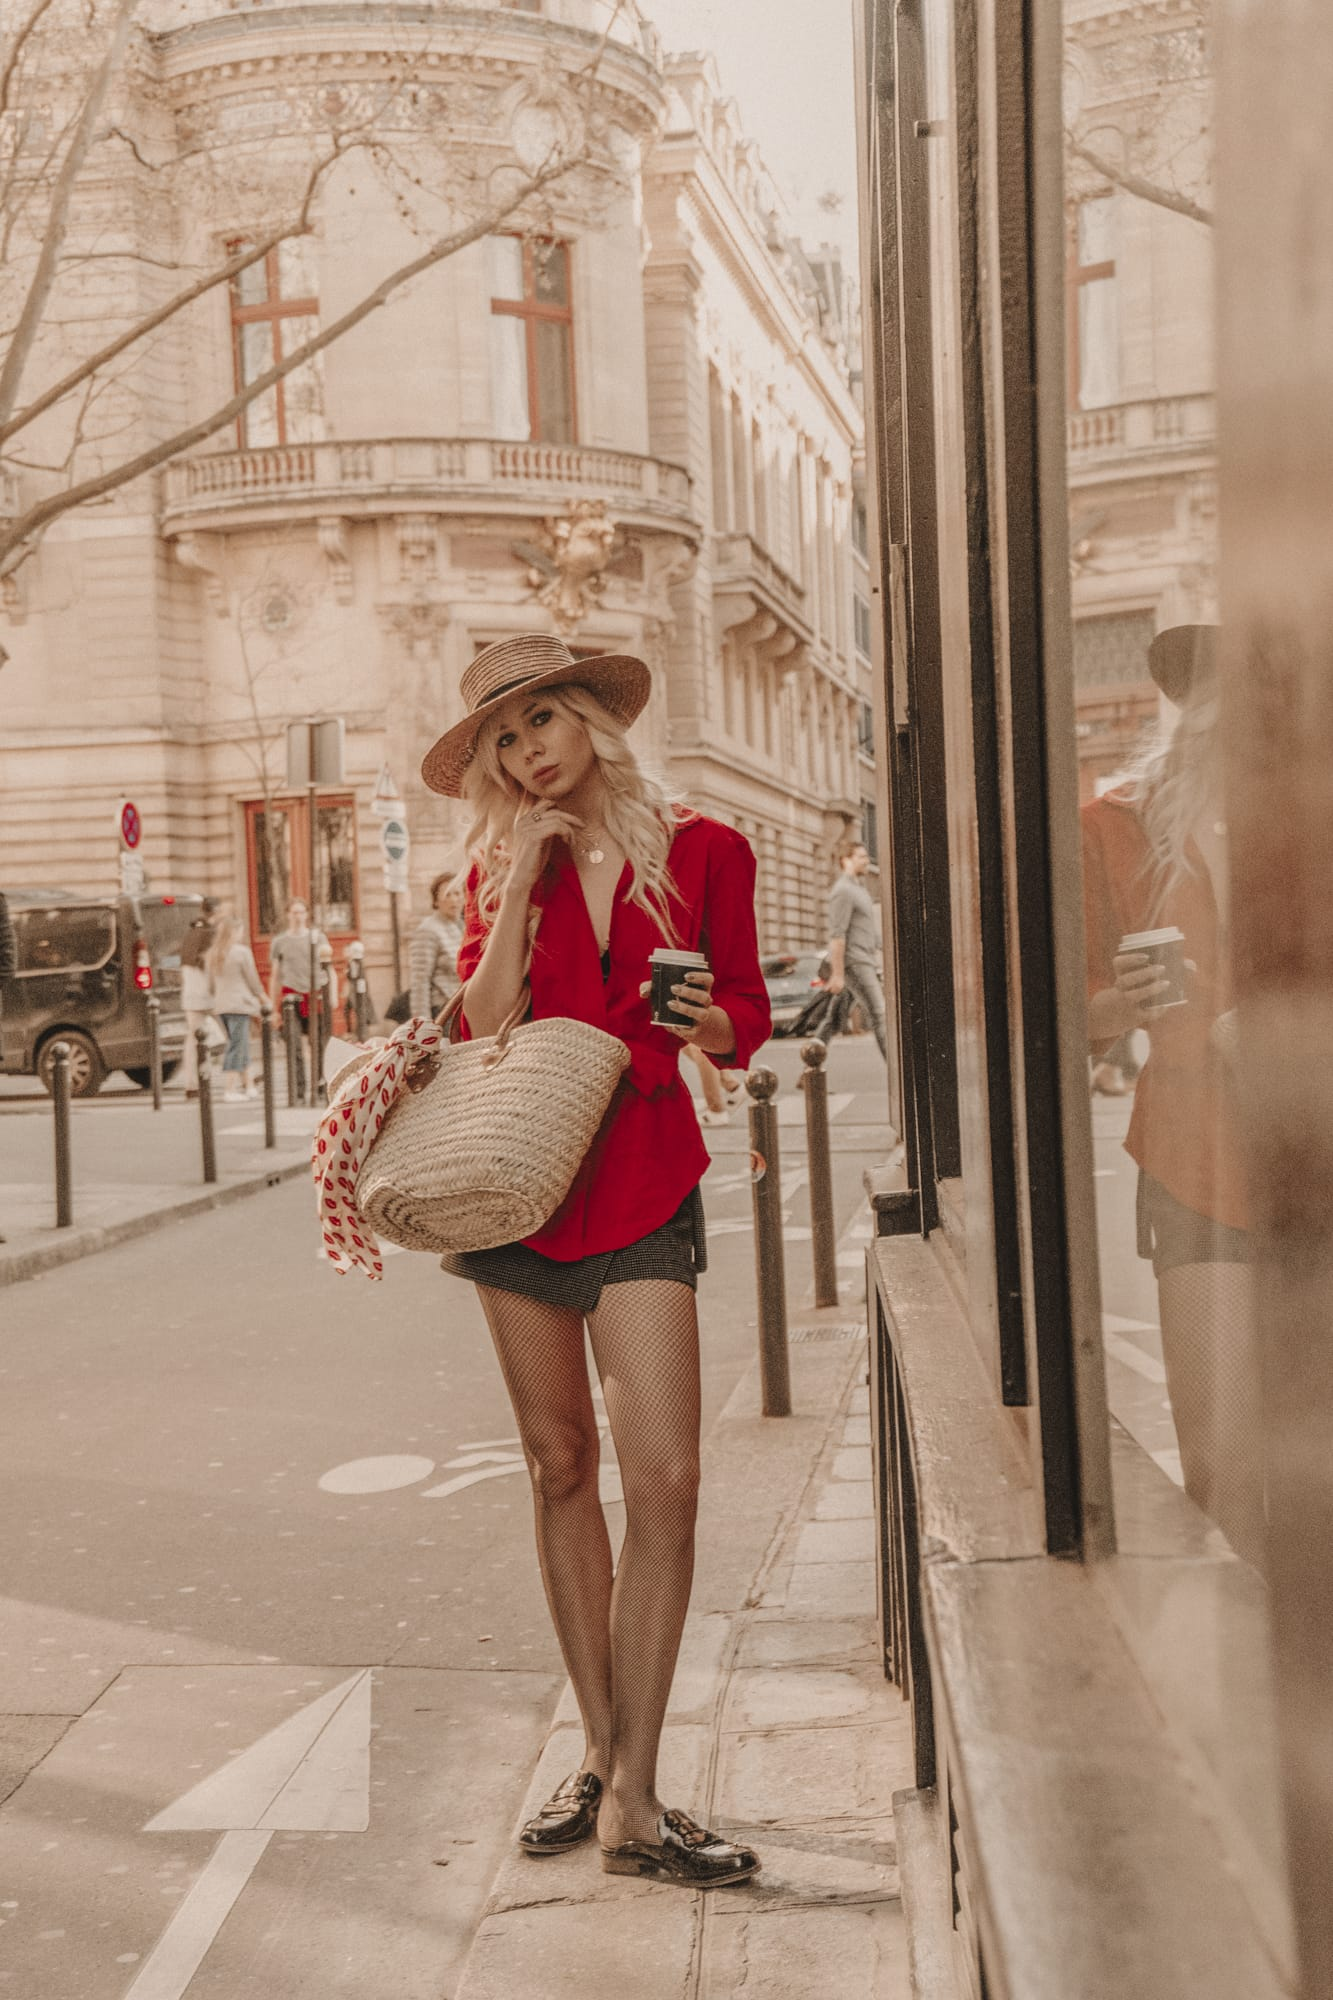 Sarah Loven, Jetset Lust, coffee in Paris